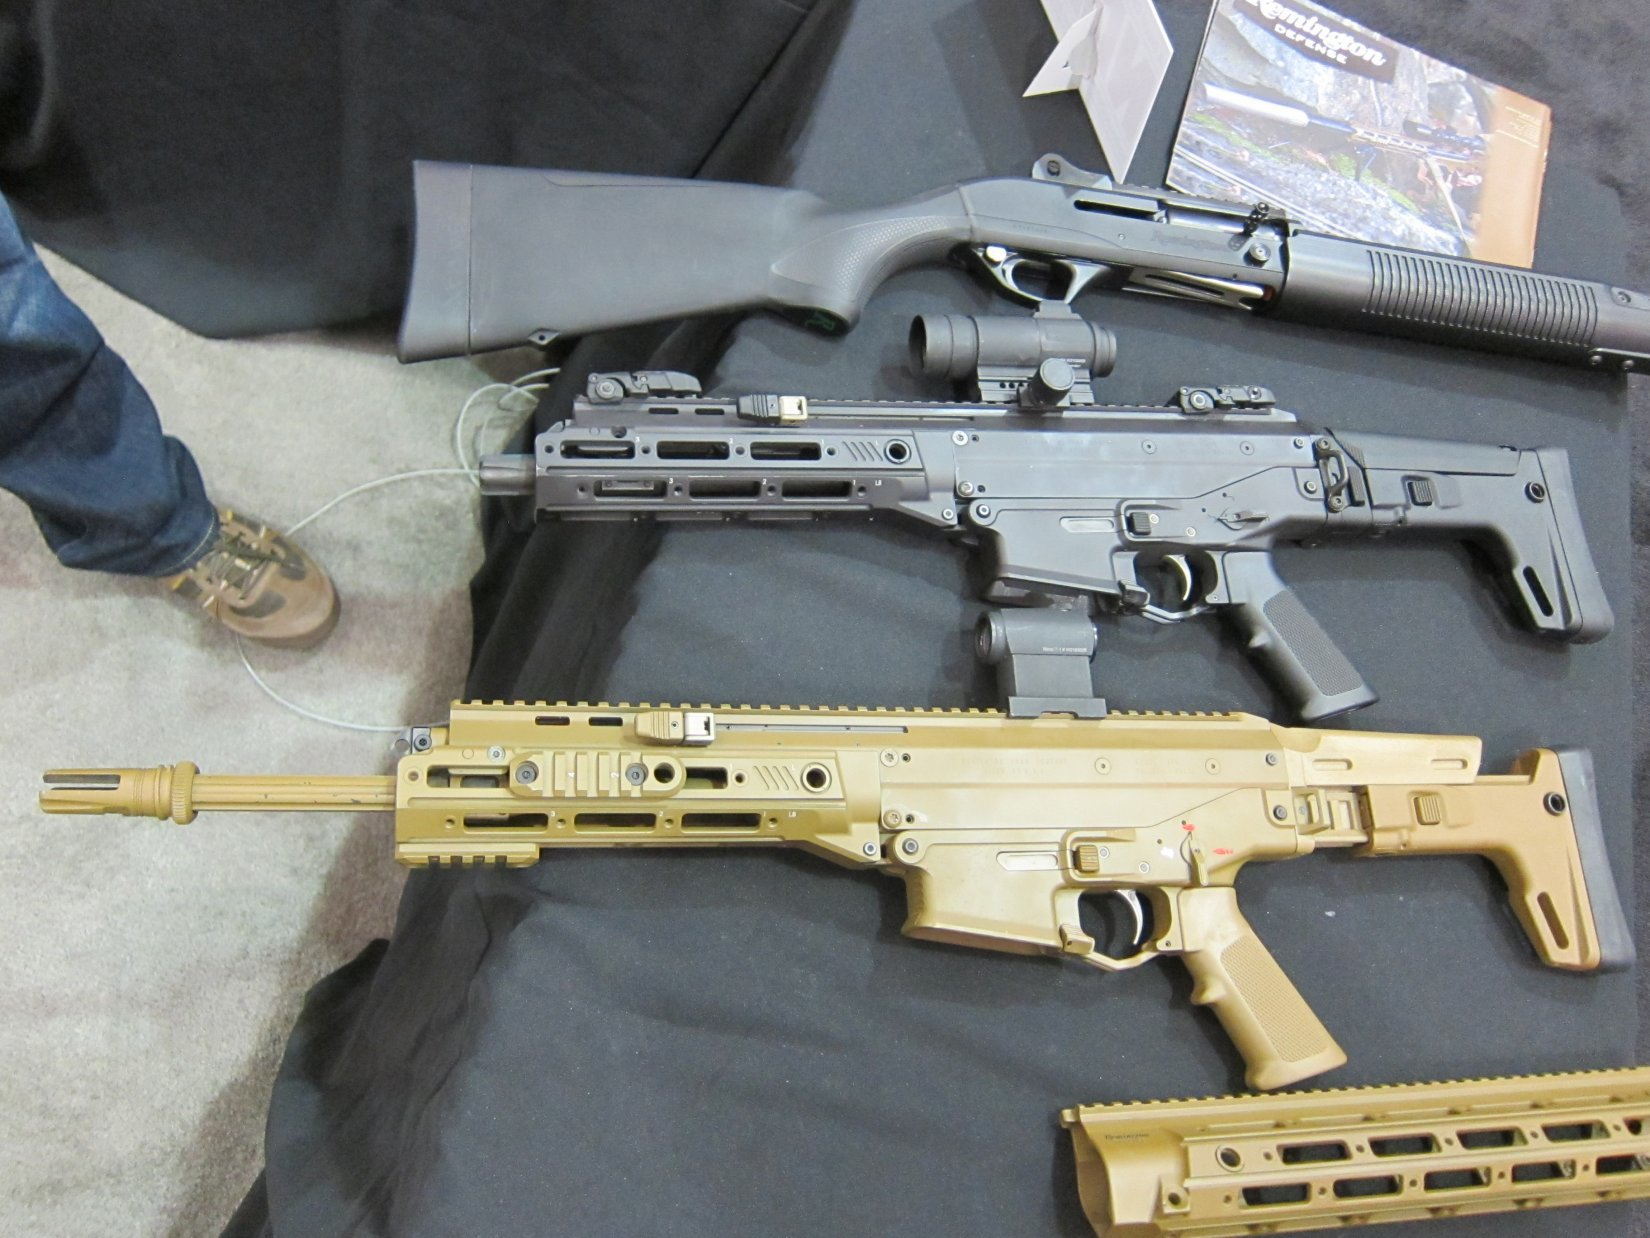 Remington ACR PDW SBR Adaptive Combat Rifle Personal Defense Weapon Short Barreled Rifle and Remington ACR Individual Carbine IC Robby Johnson NDIA Joint Armaments 2012 DefenseReview.com DR 3 Remington ACR PDW SBR (Adaptive Combat Rifle Personal Defense Weapon Short Barreled Rifle) and Remington Individual Carbine (IC) Candidate: Remington Defense Assault Rifles/Carbines/PDWs at NDIA Joint Armaments Conference 2012 (Video!)